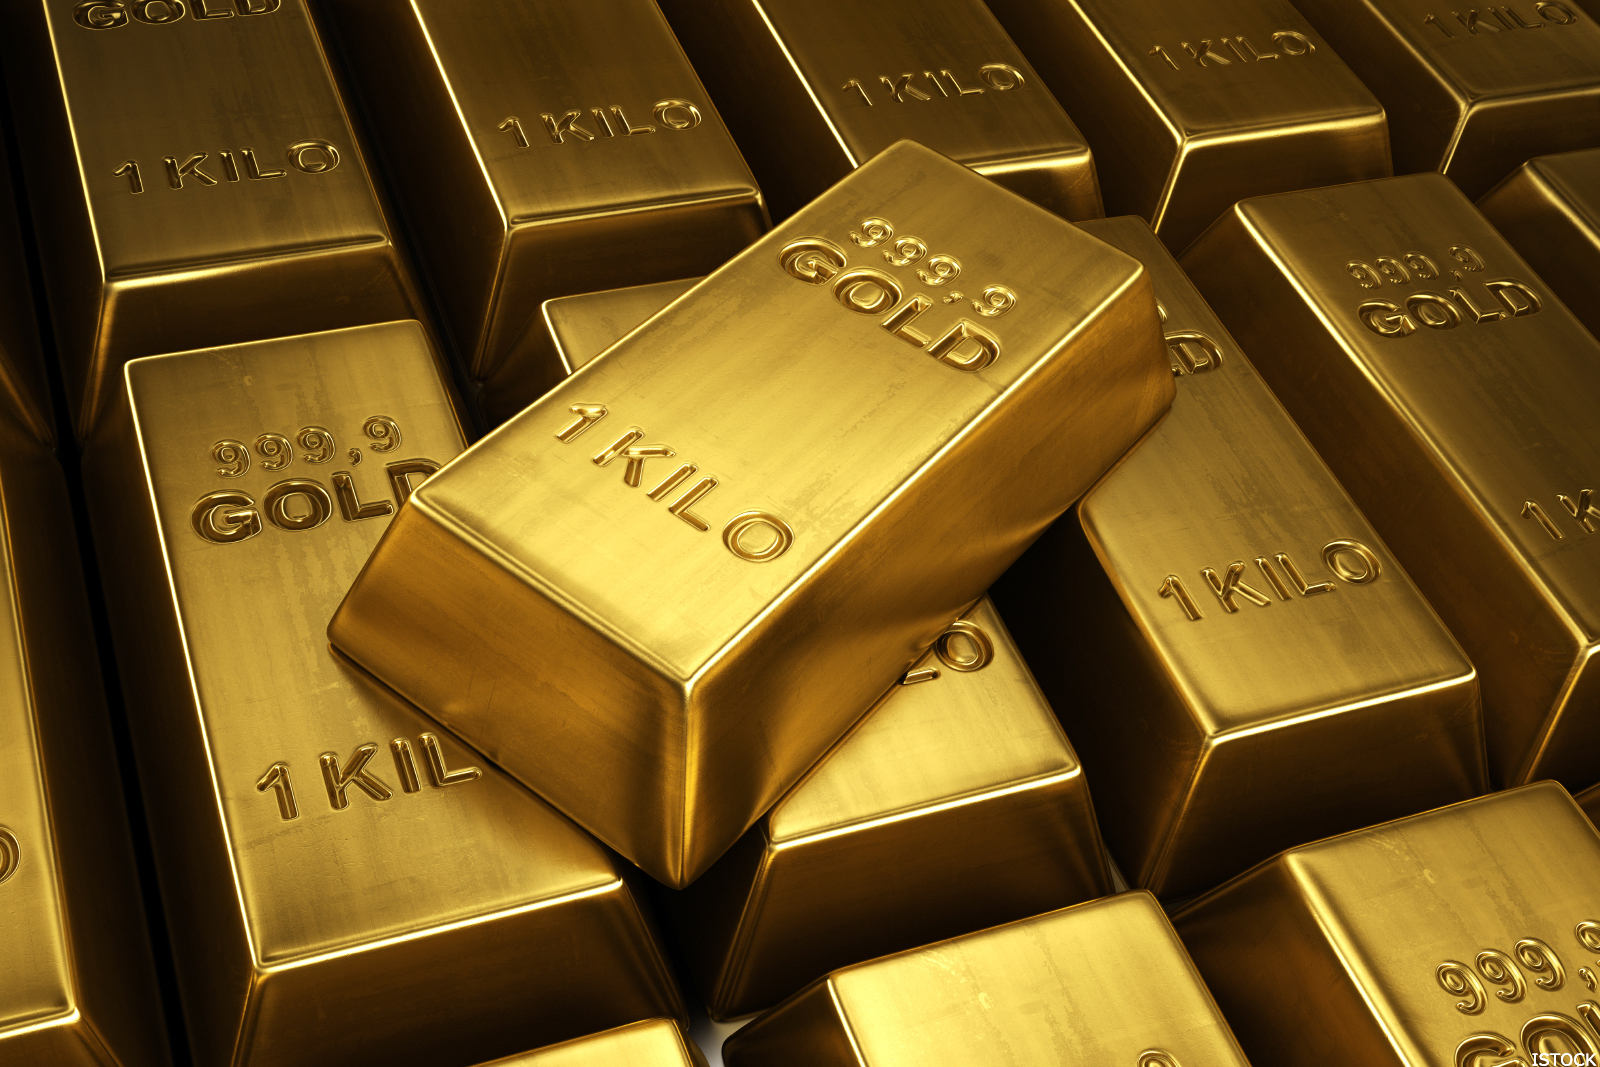 Gld Stock Quote Barrick Gold Abx Stock Advancing On Higher Gold Prices  Thestreet